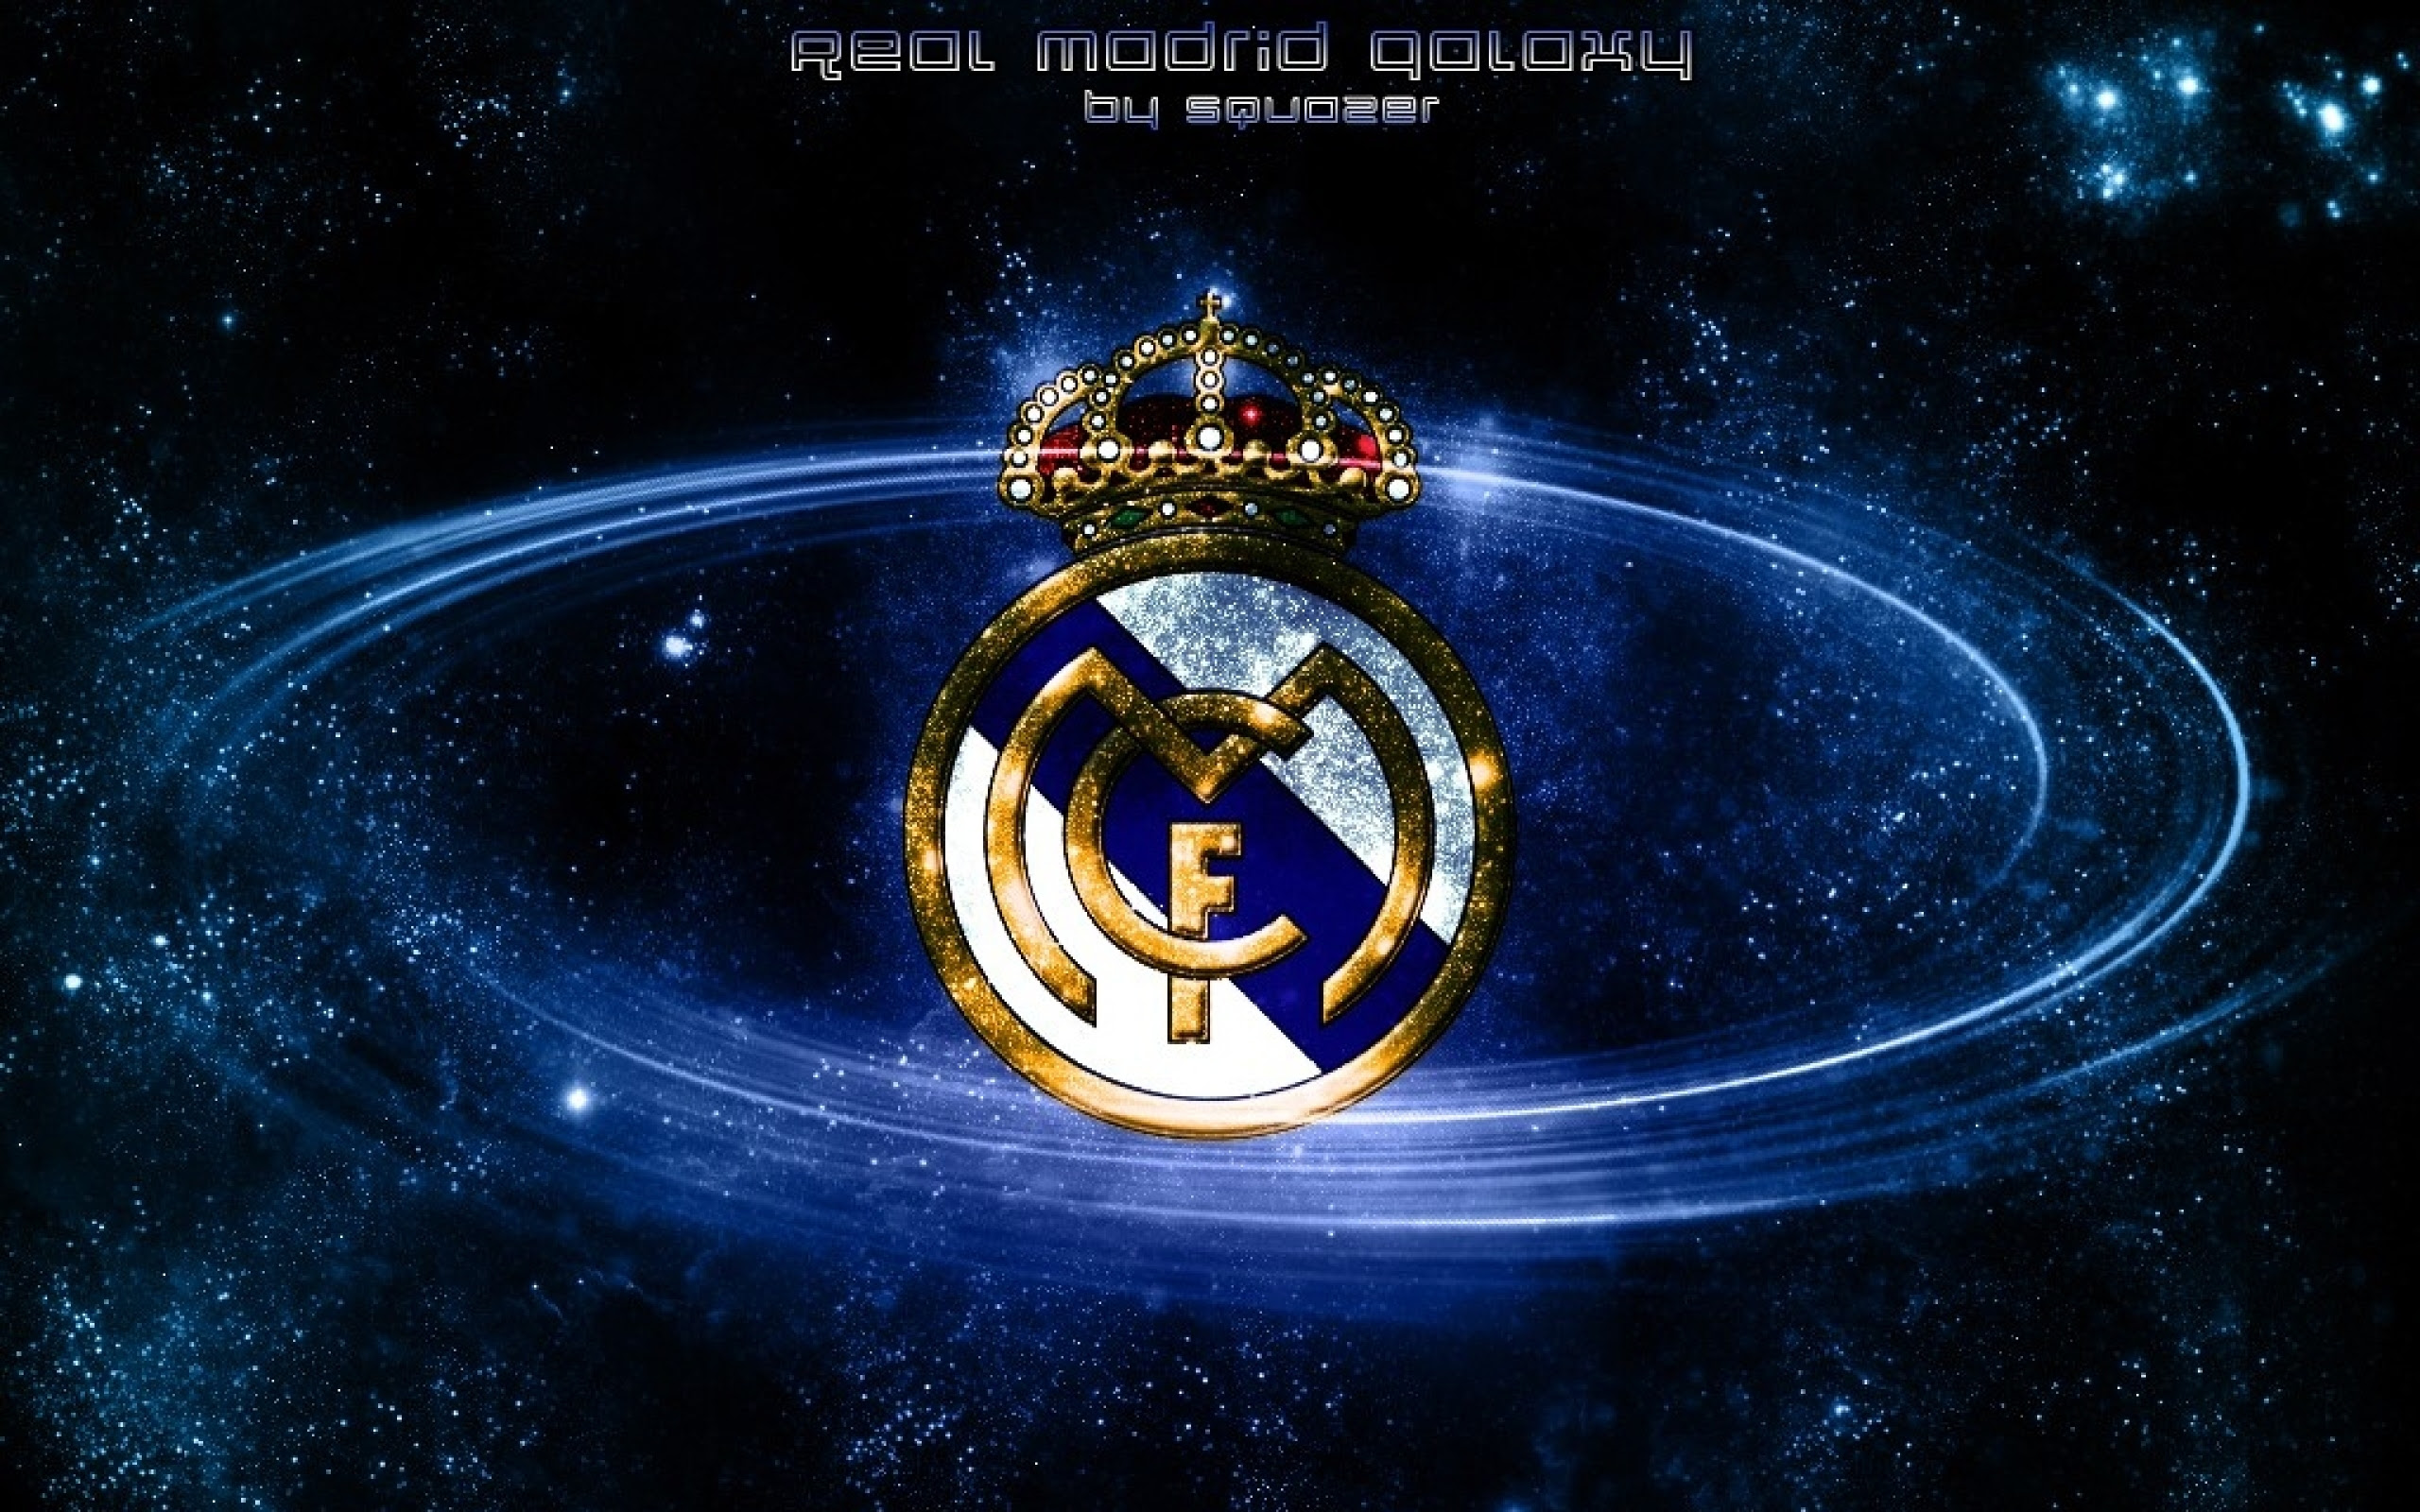 Real Madrid Logo Wallpaper Hd Pixelstalk Net